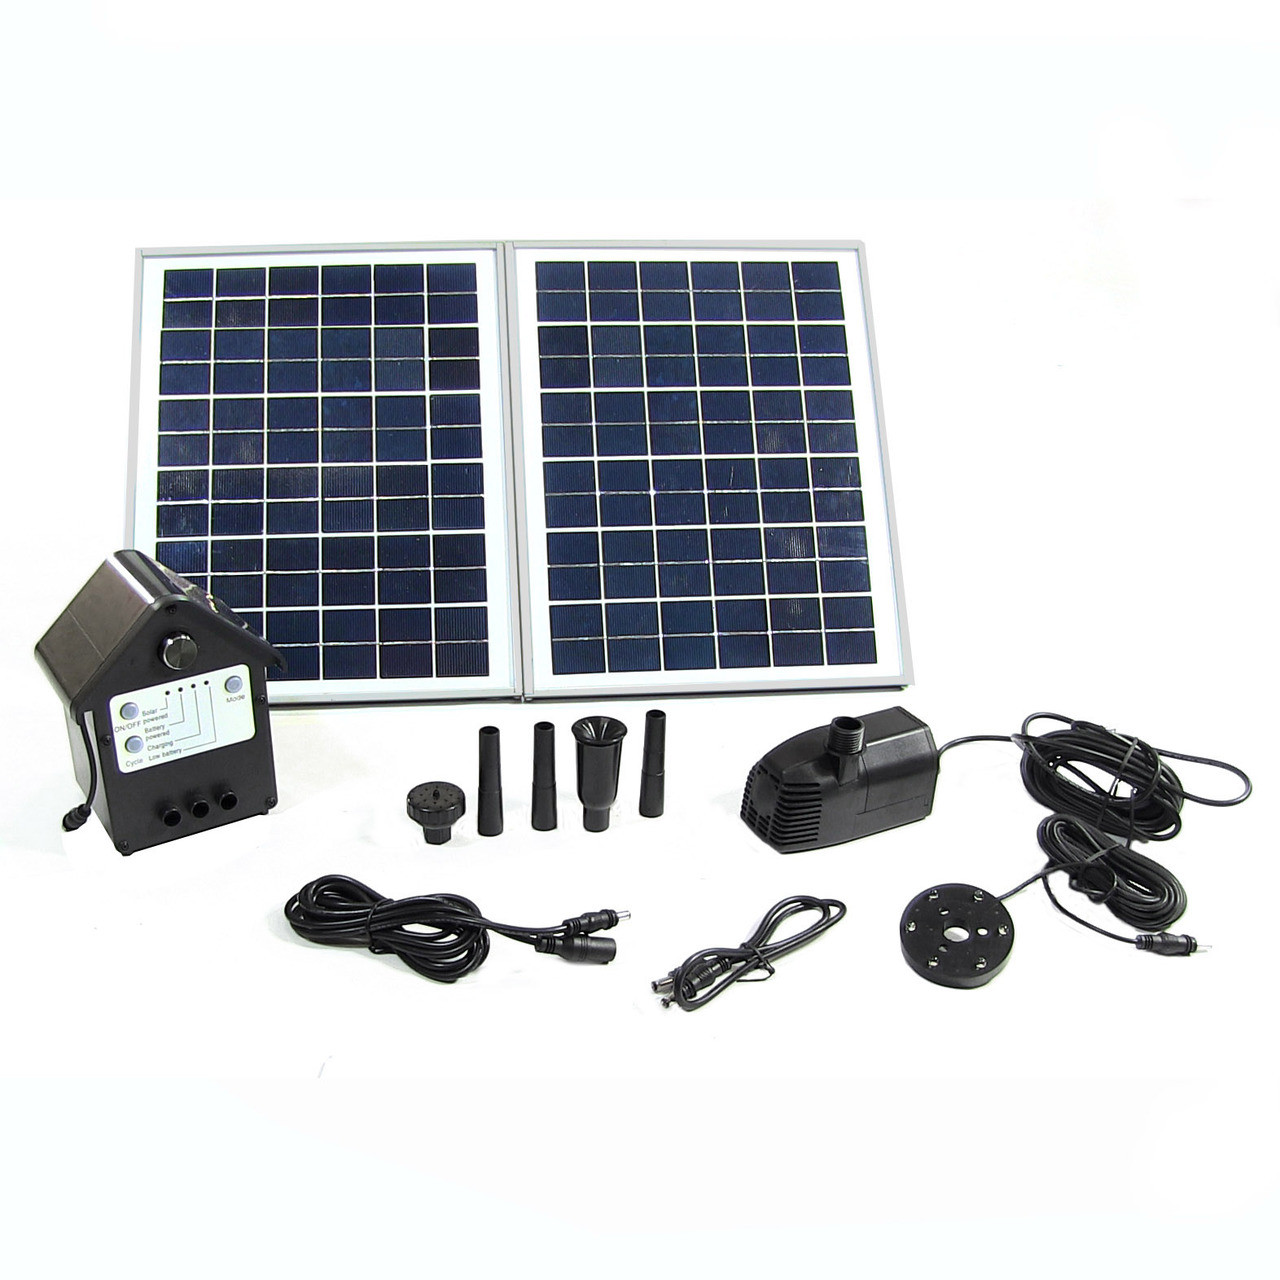 Sunnydaze Solar Pump Solar Panel Kit Battery Pack LED Light  Picture 258